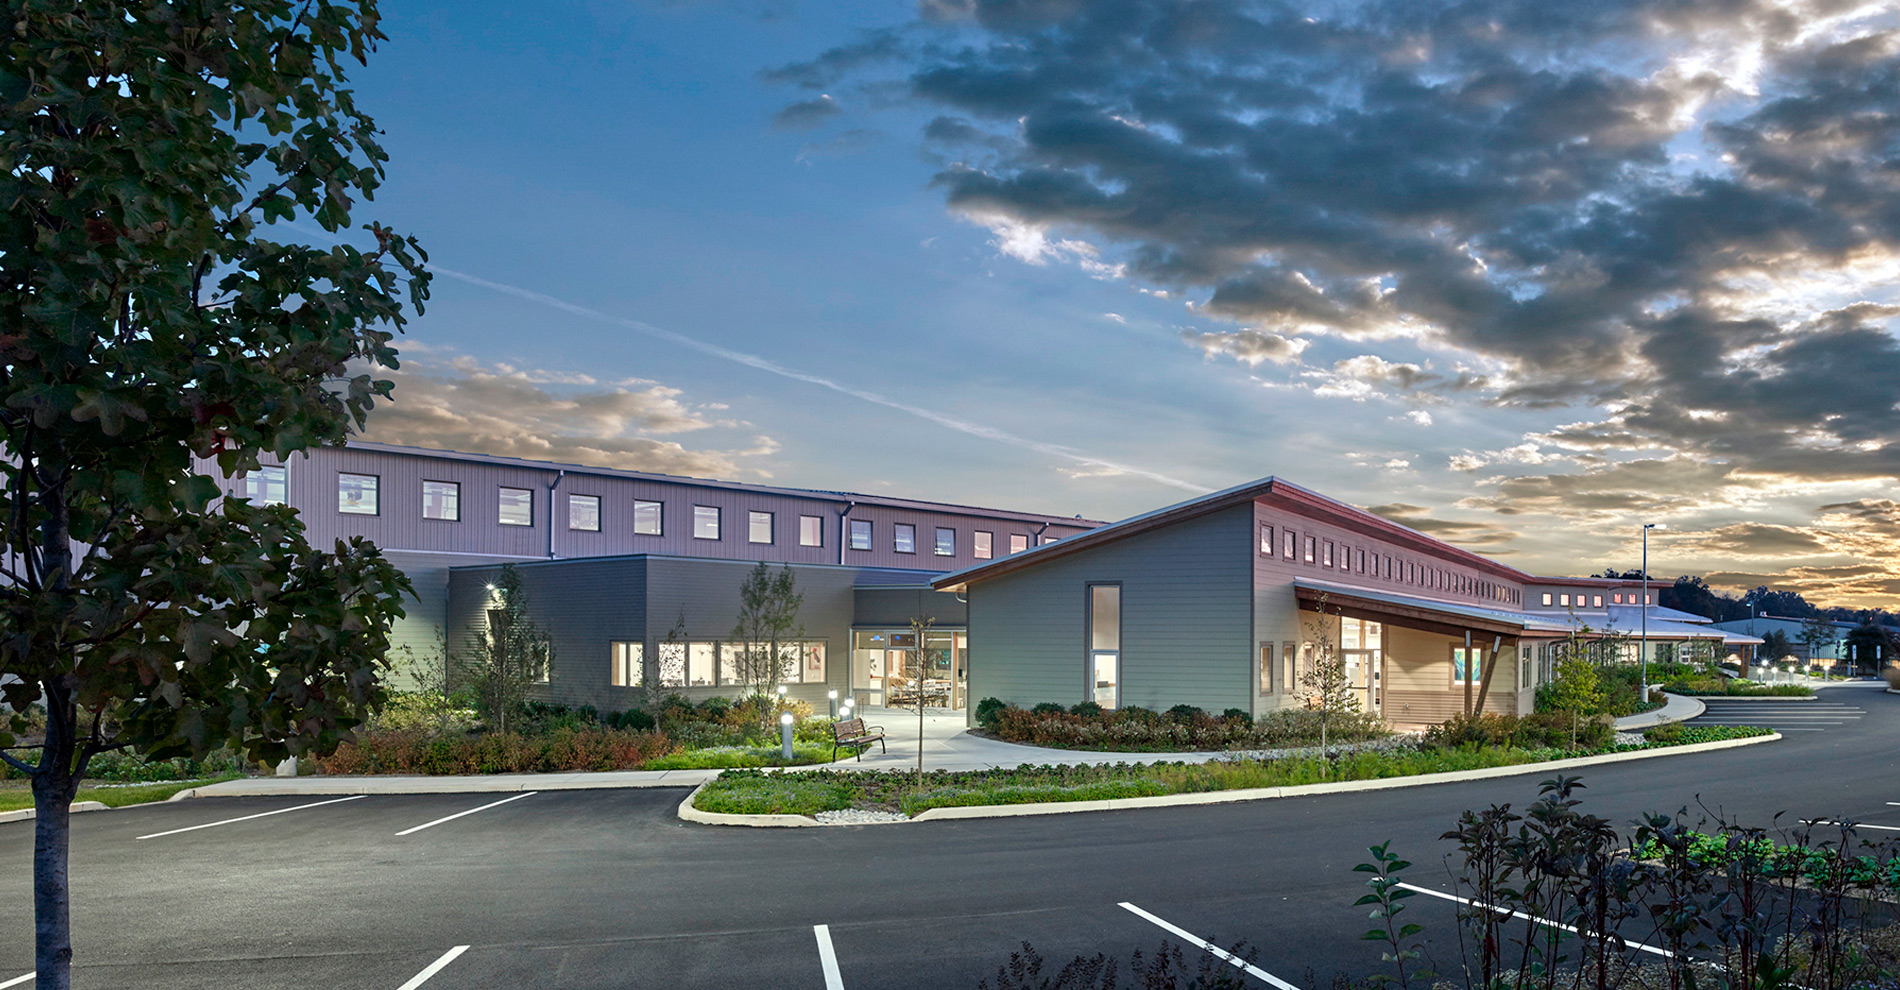 East Petersburg Pa >> Exterior photo of Aerzen office and warehouse building | WARFEL